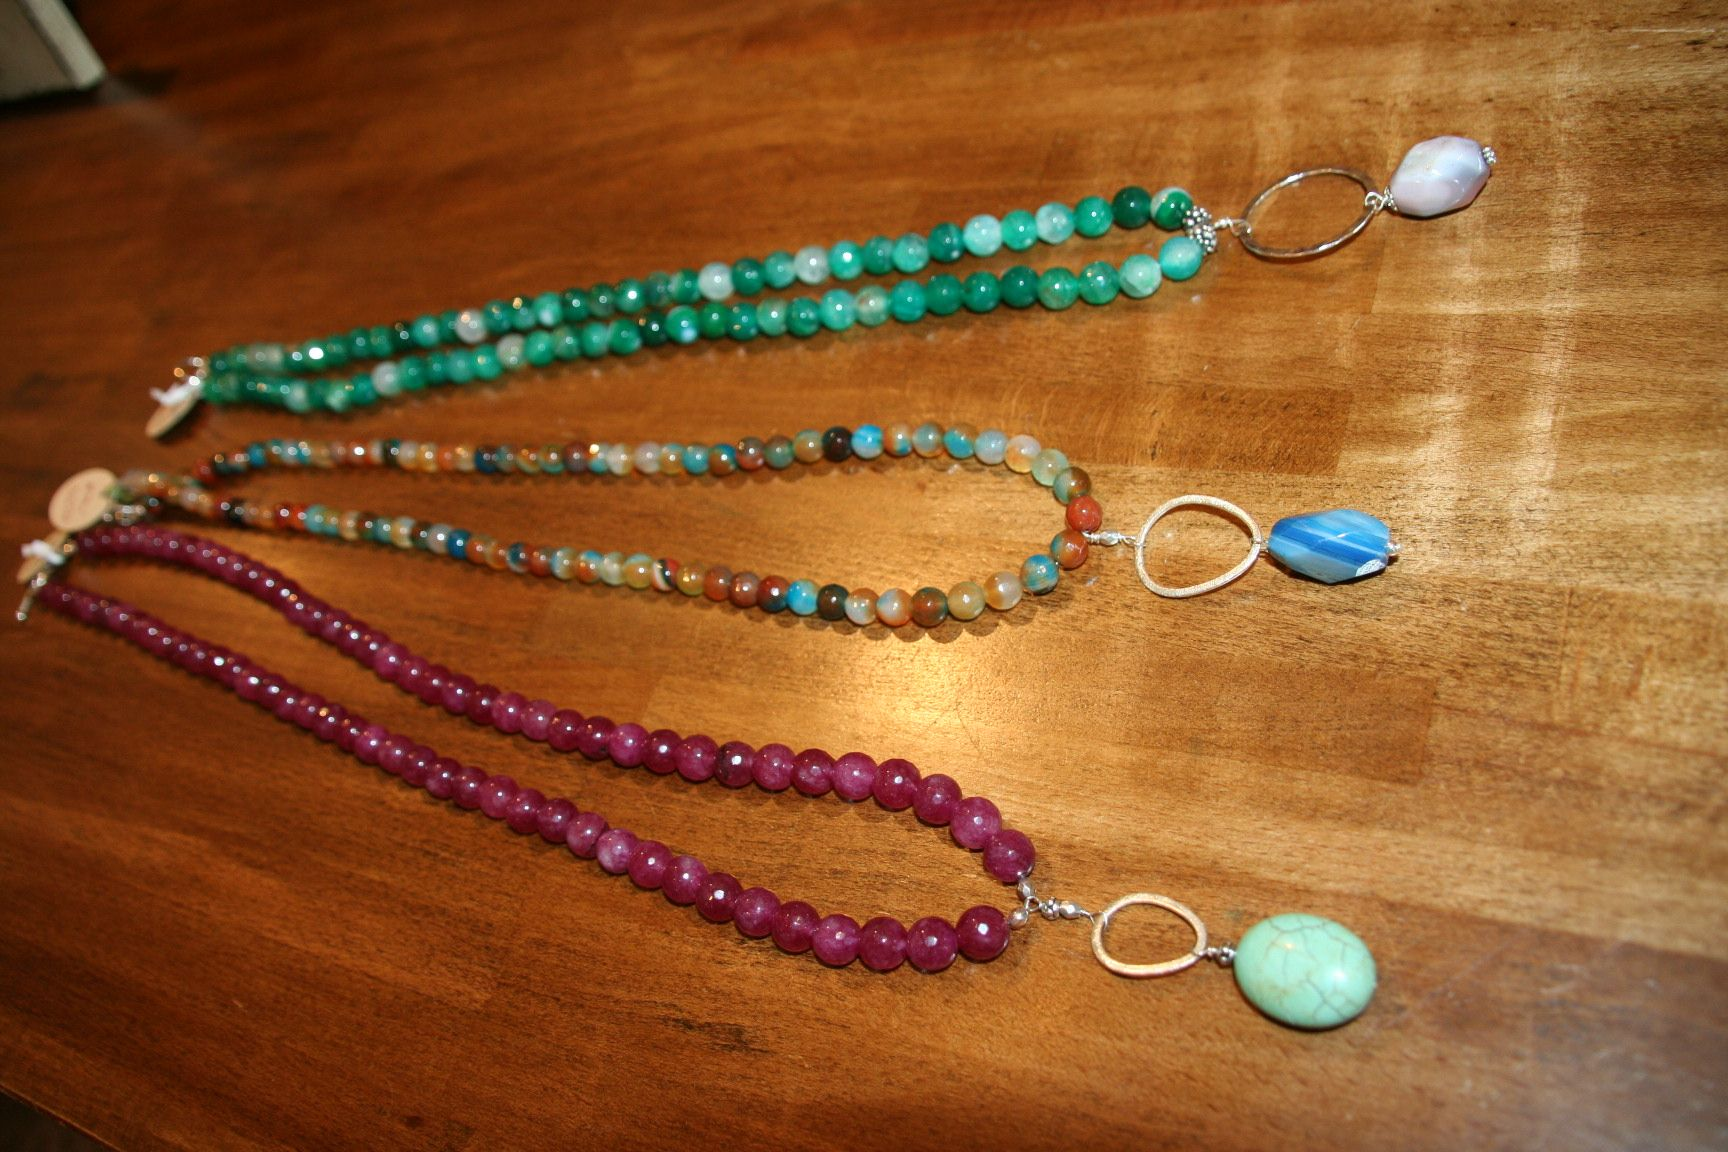 Long Stone Necklaces by Olivia Rae, Our Local Jewelry Designer